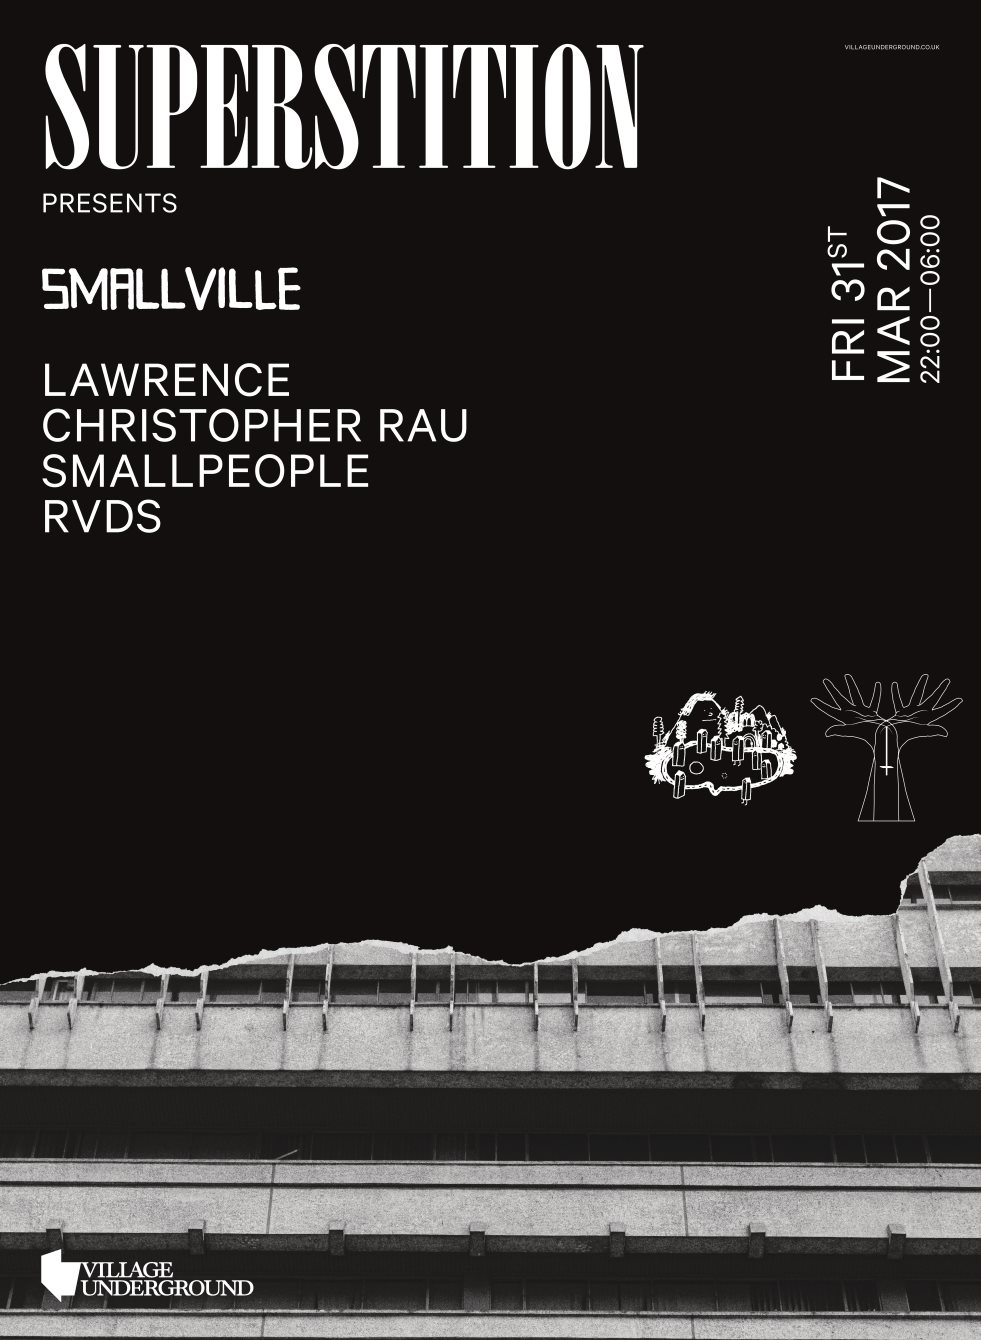 Superstition X Smallville - Lawrence, Christopher Rau, Smallpeople, RVDS - Flyer front